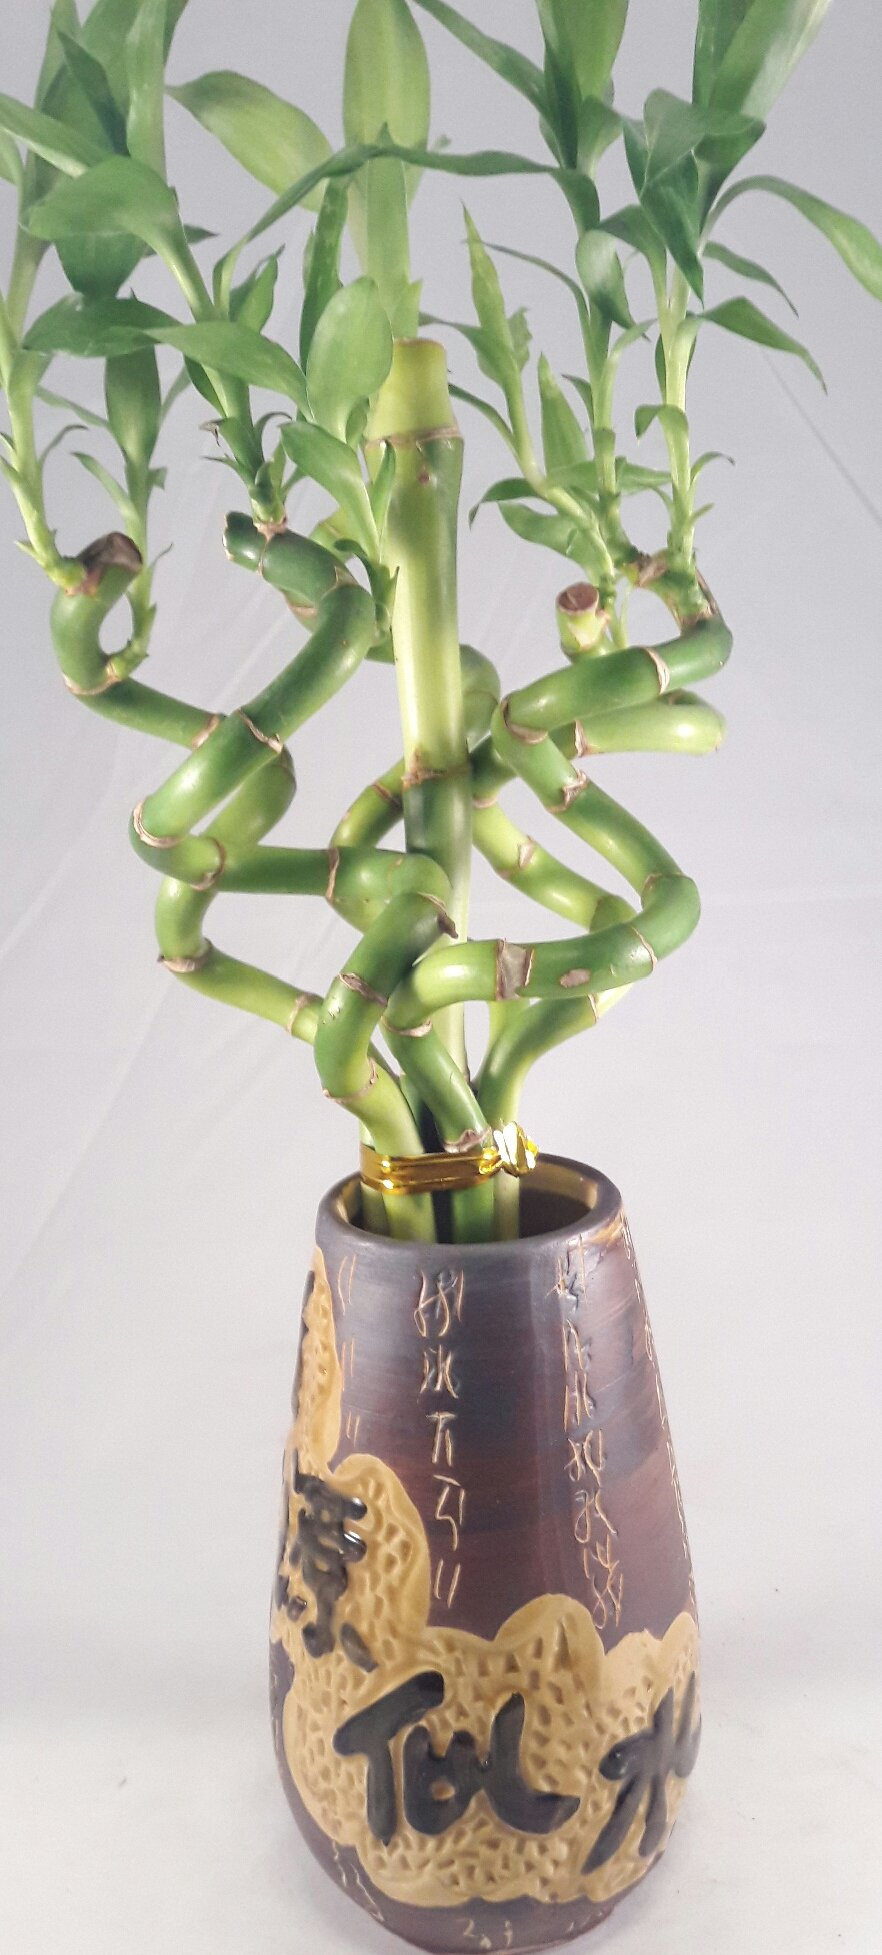 Jmbamboo - Live Spiral 6 Style Lucky Bamboo Plant Arrangement w/ Ceramic Vase unique from Jmbamboo by JM BAMBOO (Image #2)